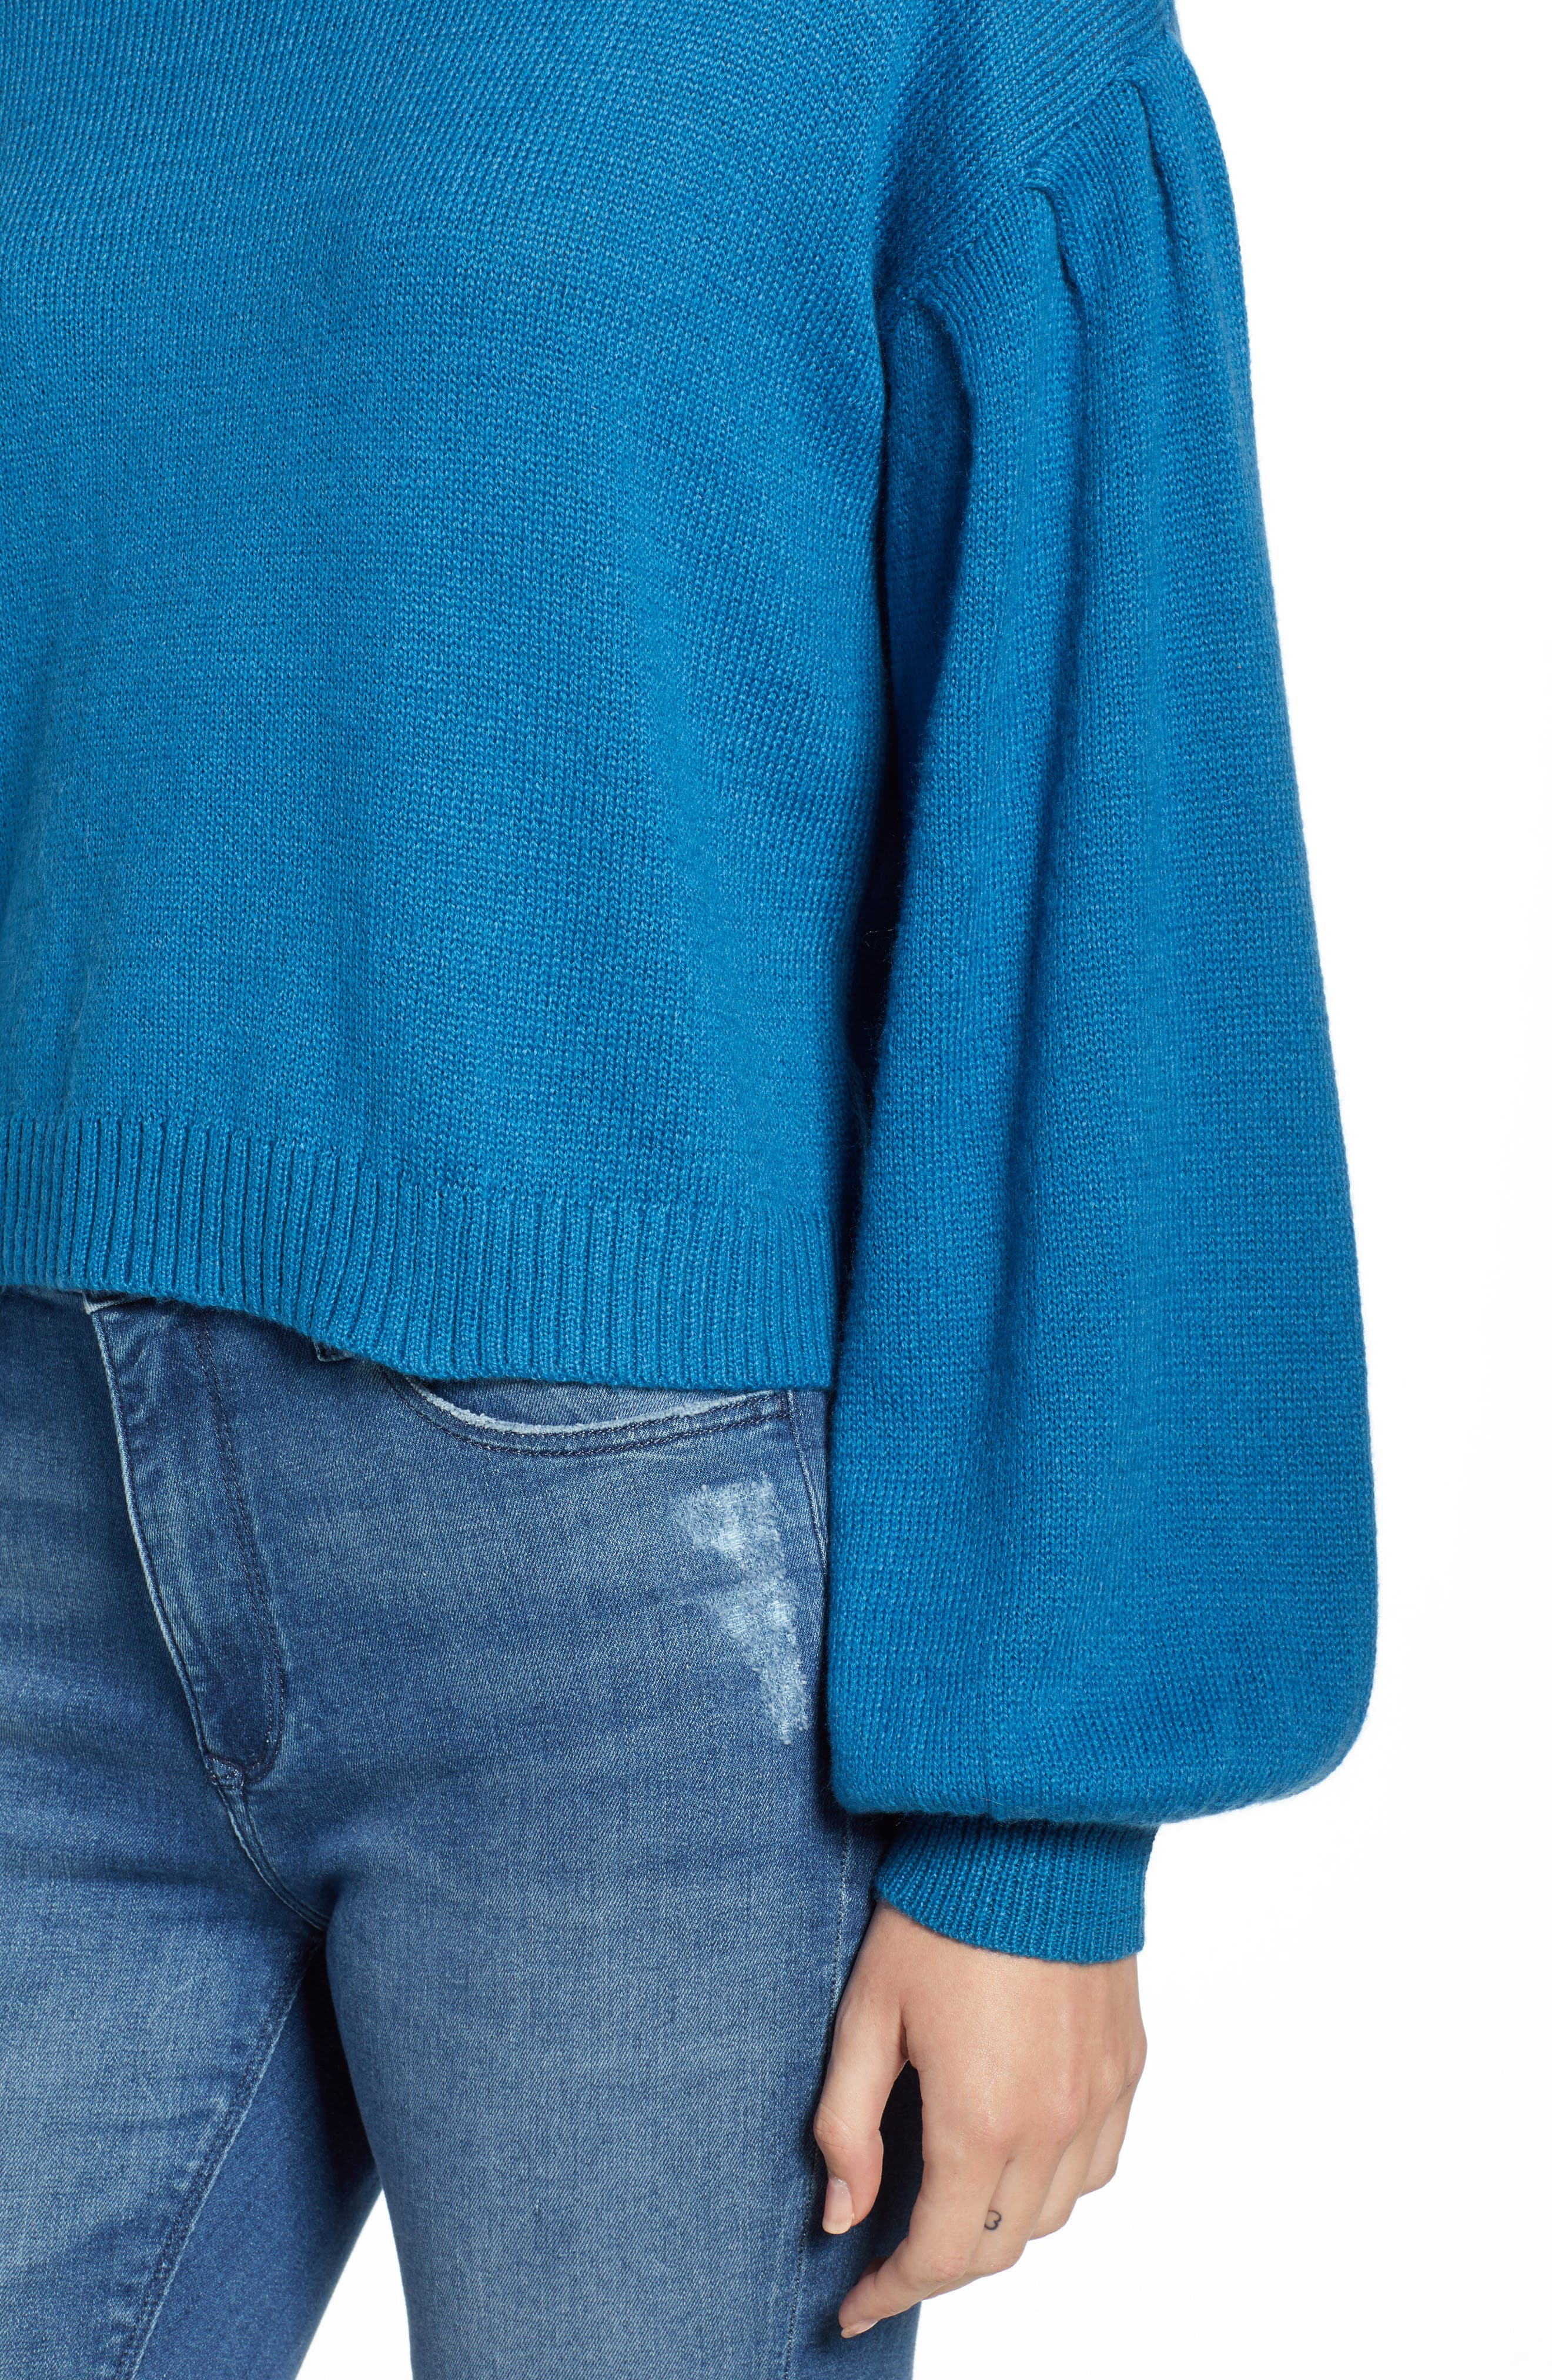 Blouson Sleeve Sweater,                             Alternate thumbnail 4, color,                             TEAL SAPPHIRE